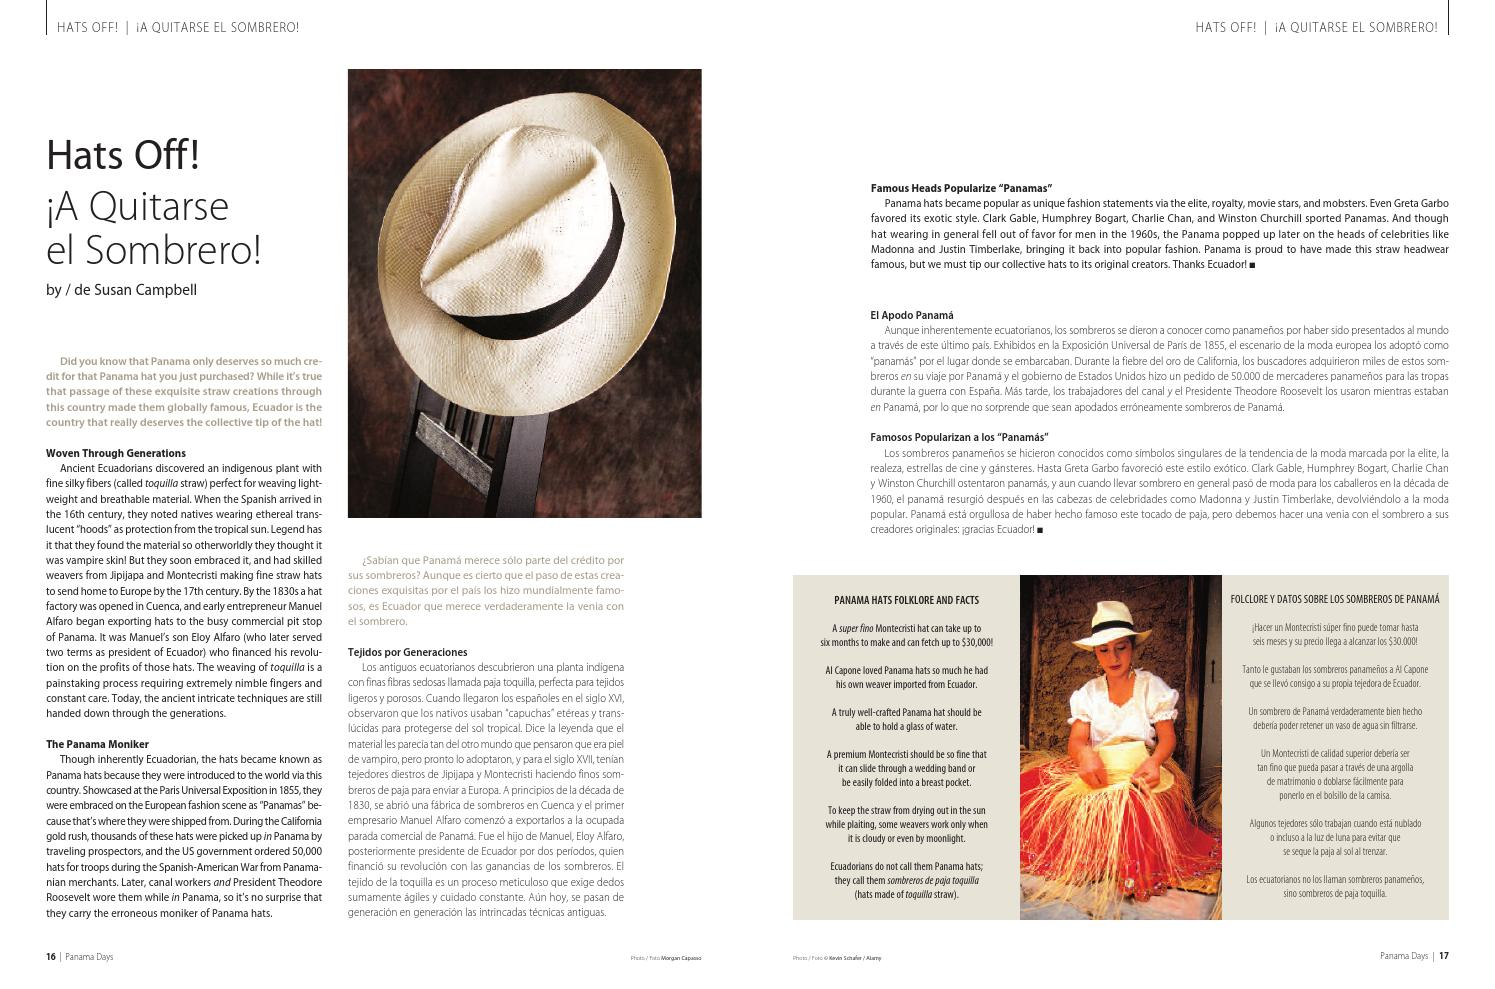 a903ae96 Hats Off to Ecuador-Panama by Sue Campbell - issuu